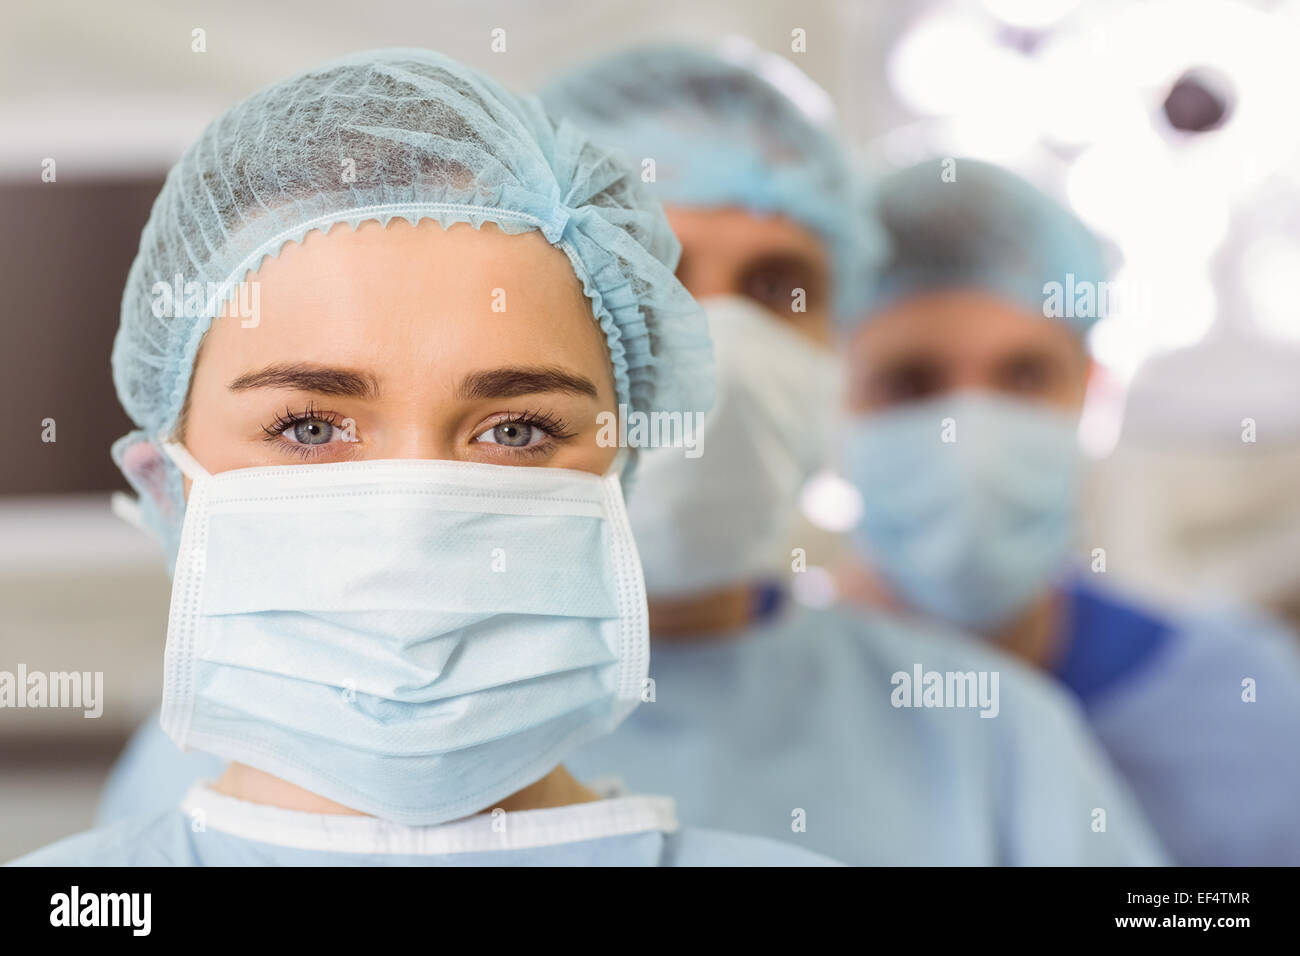 Team of surgeons looking at camera - Stock Image